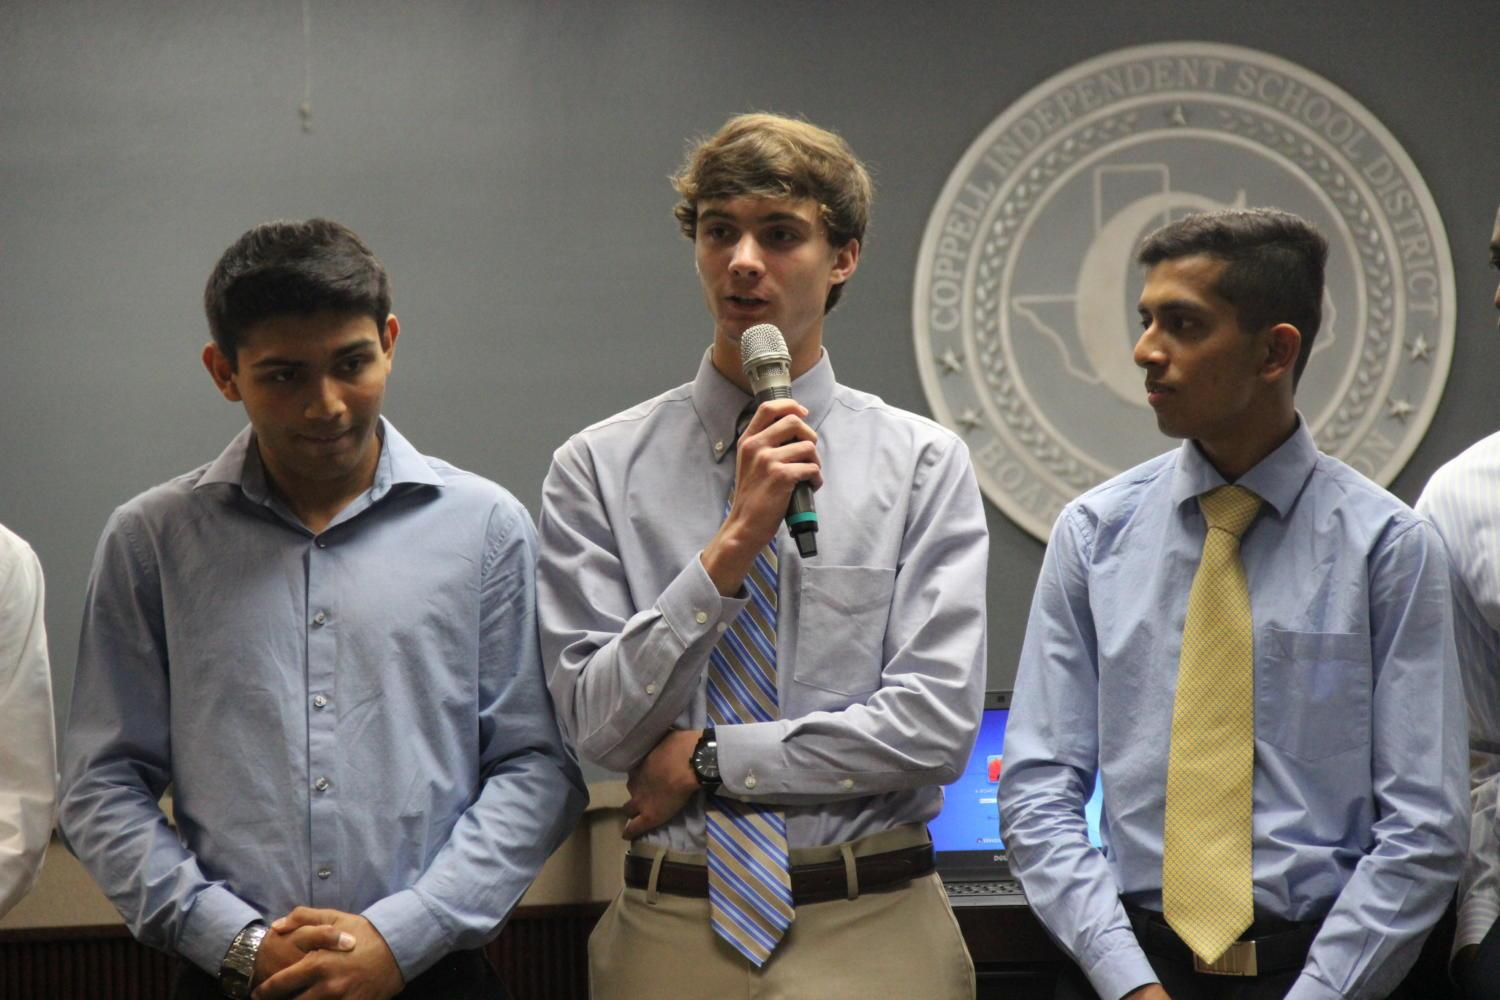 Coppell+High+School+Track+Coach+Nicholas+Benton%E2%80%99s+Academic+All-State+qualifiers+were+recognized+at+Monday+night%27s+Board+of+Trustees+meeting.+Boys+track+All-State+qualifier+Evan+Harr+introduces+himself+to+the+packed+room+in+the+Vonita+White+Administration+Building.%0A